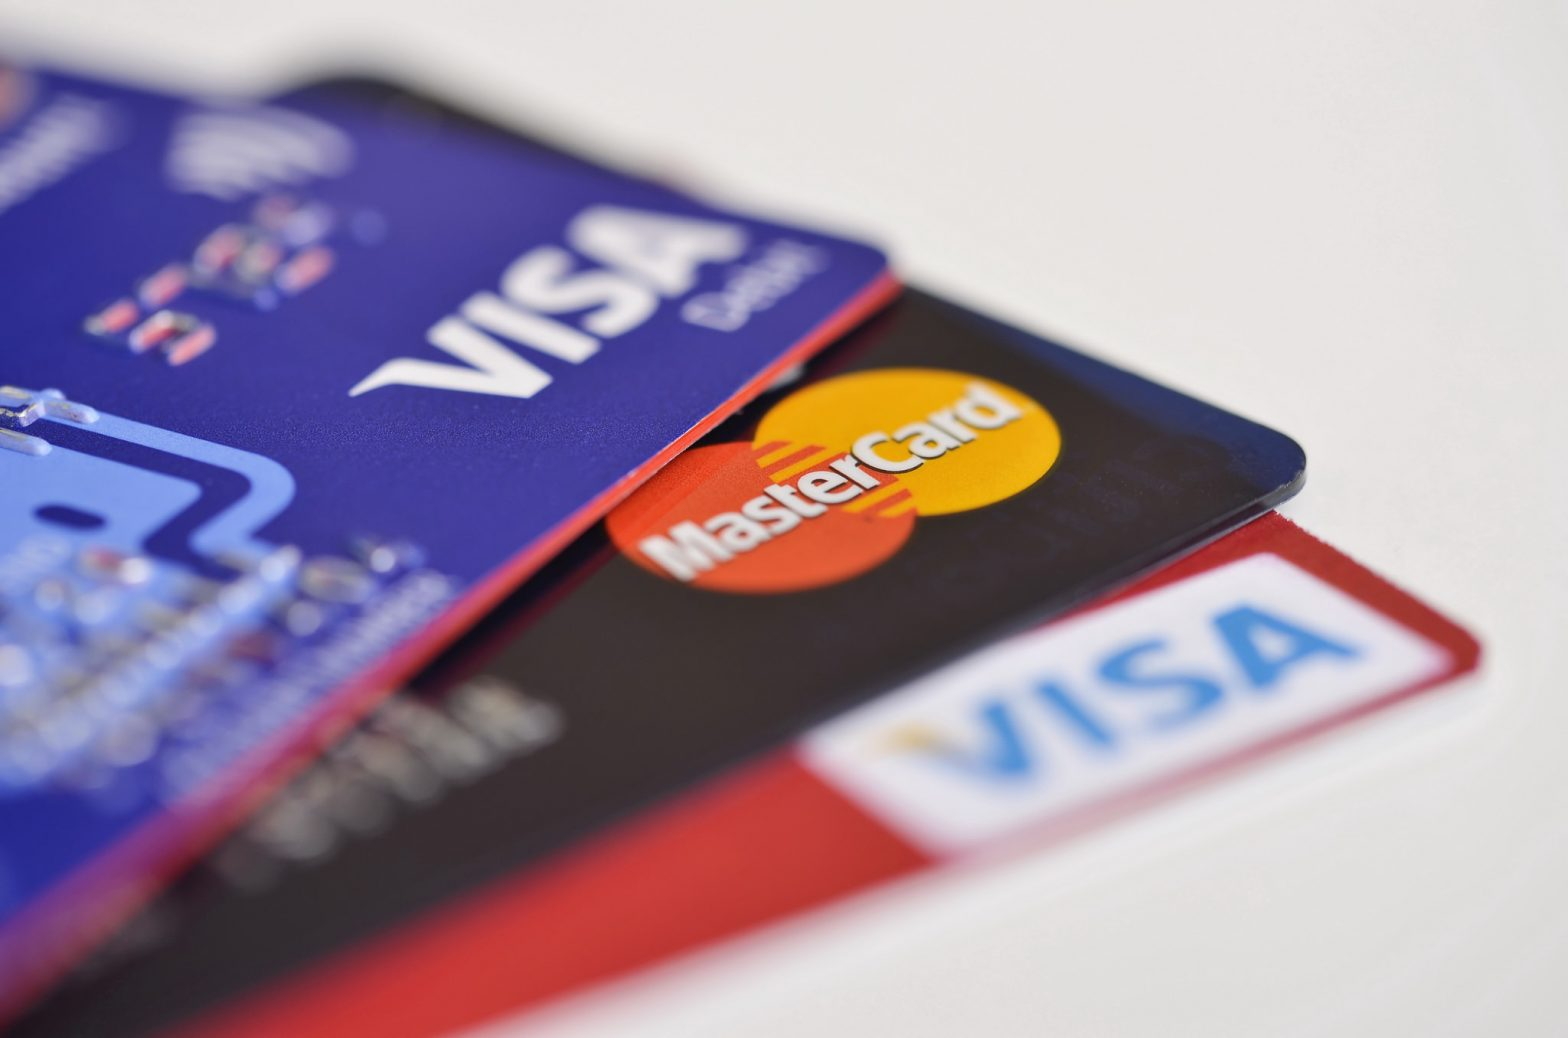 Limits of credit cards international travel insurance